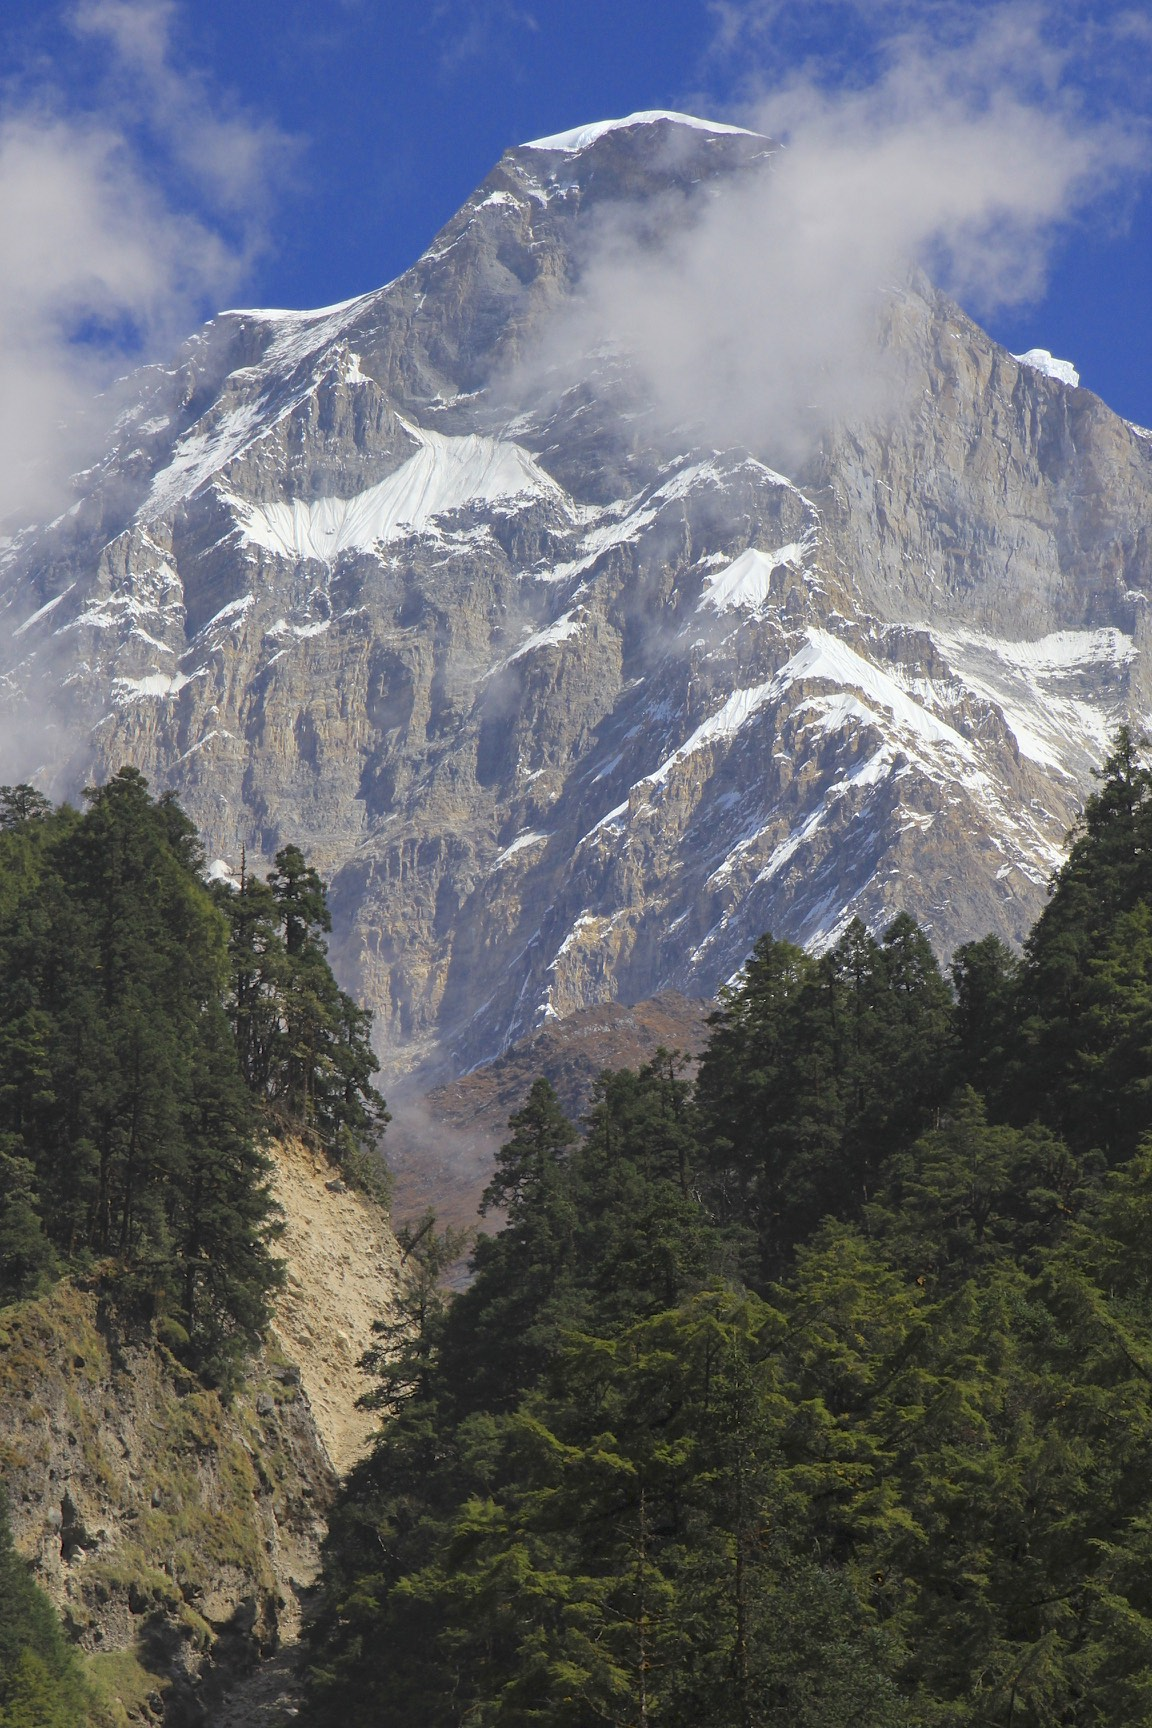 South-west face of Dhaulagiri I